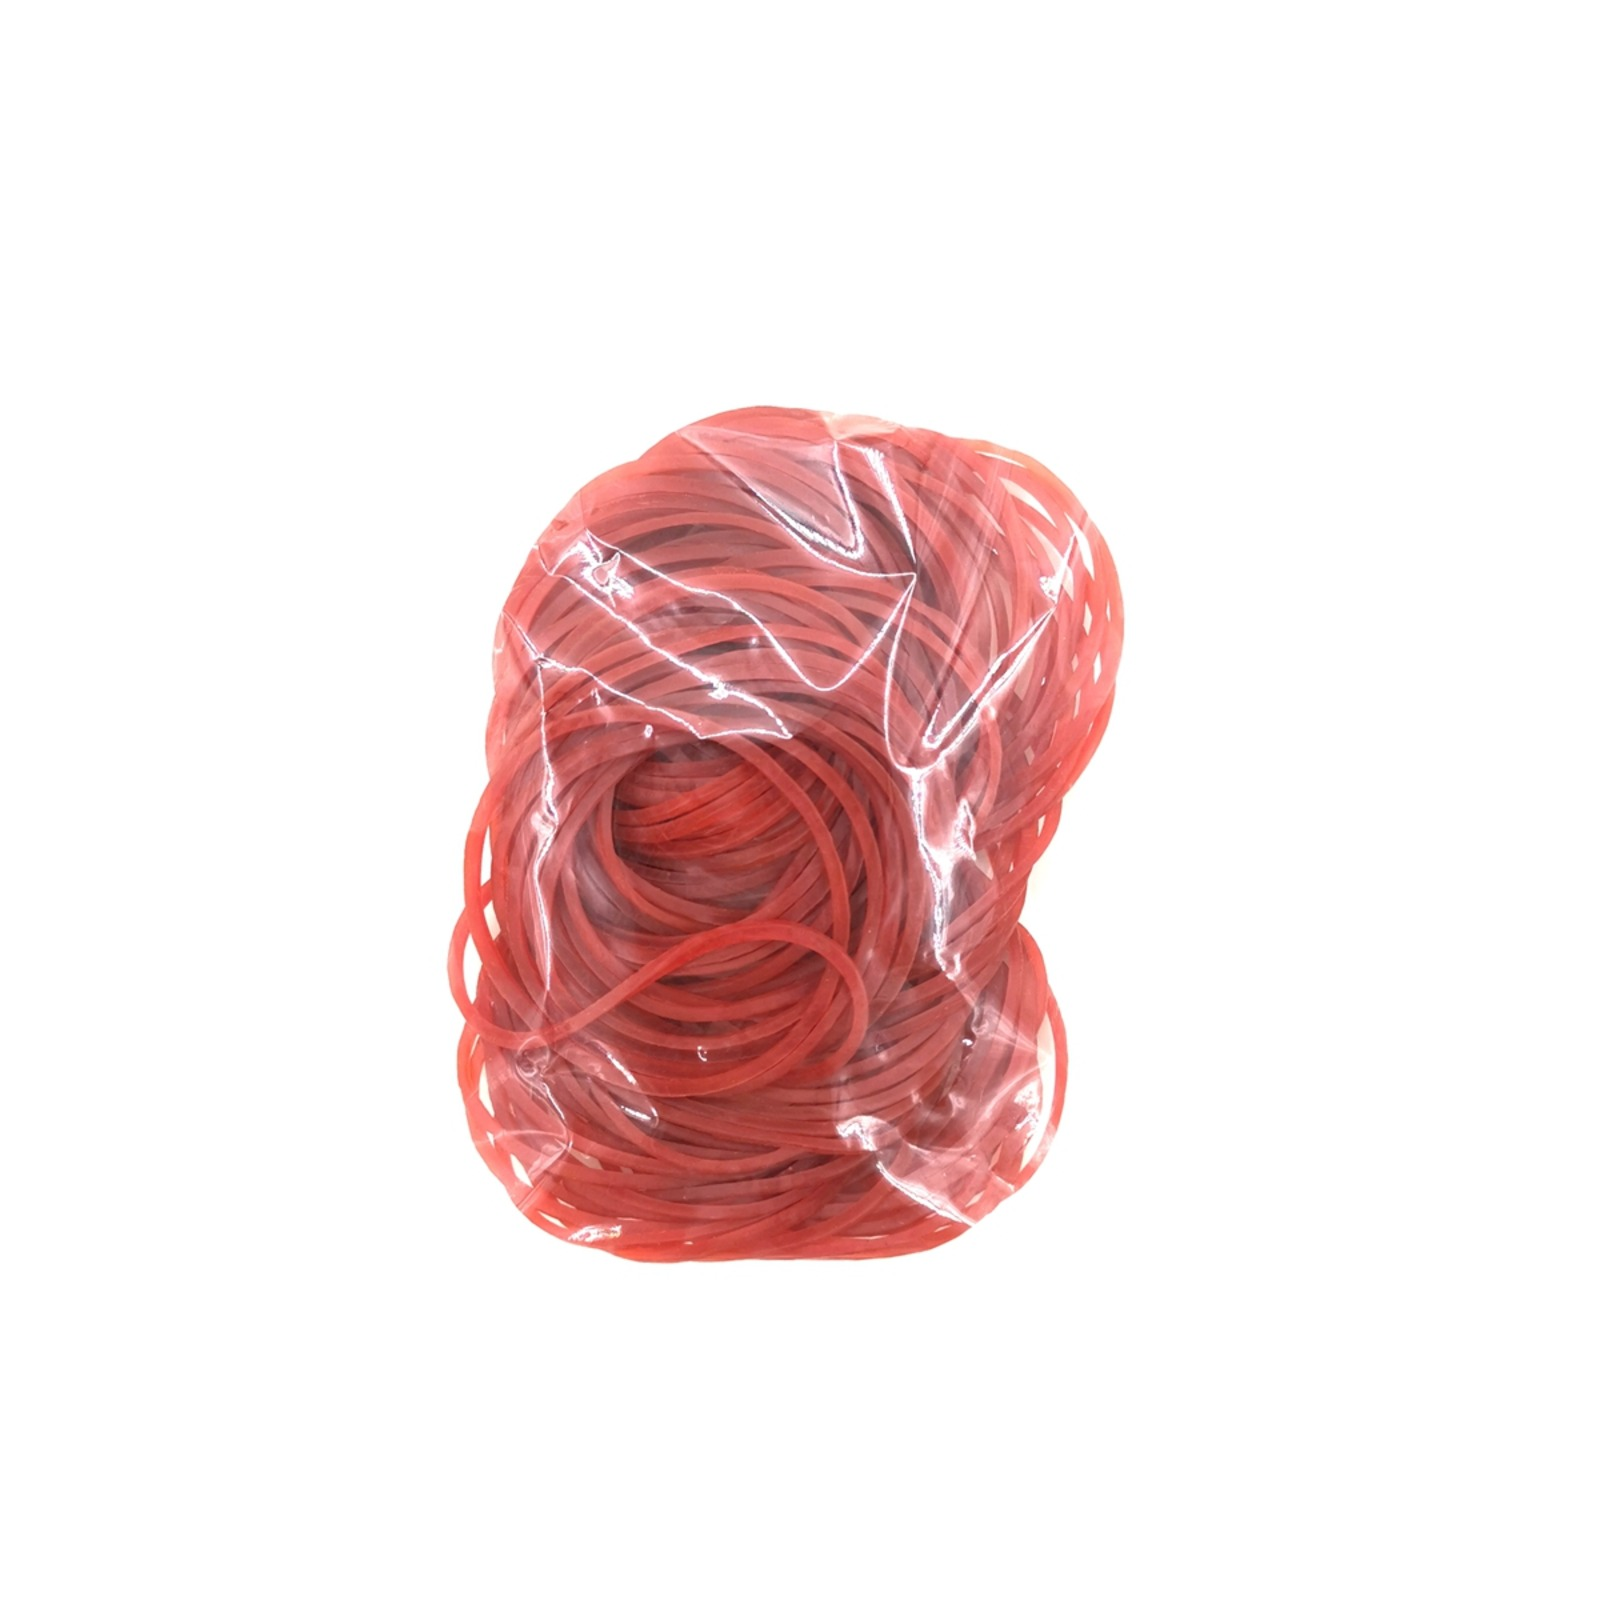 VIP 1 3/4'' Rubber Band - Red